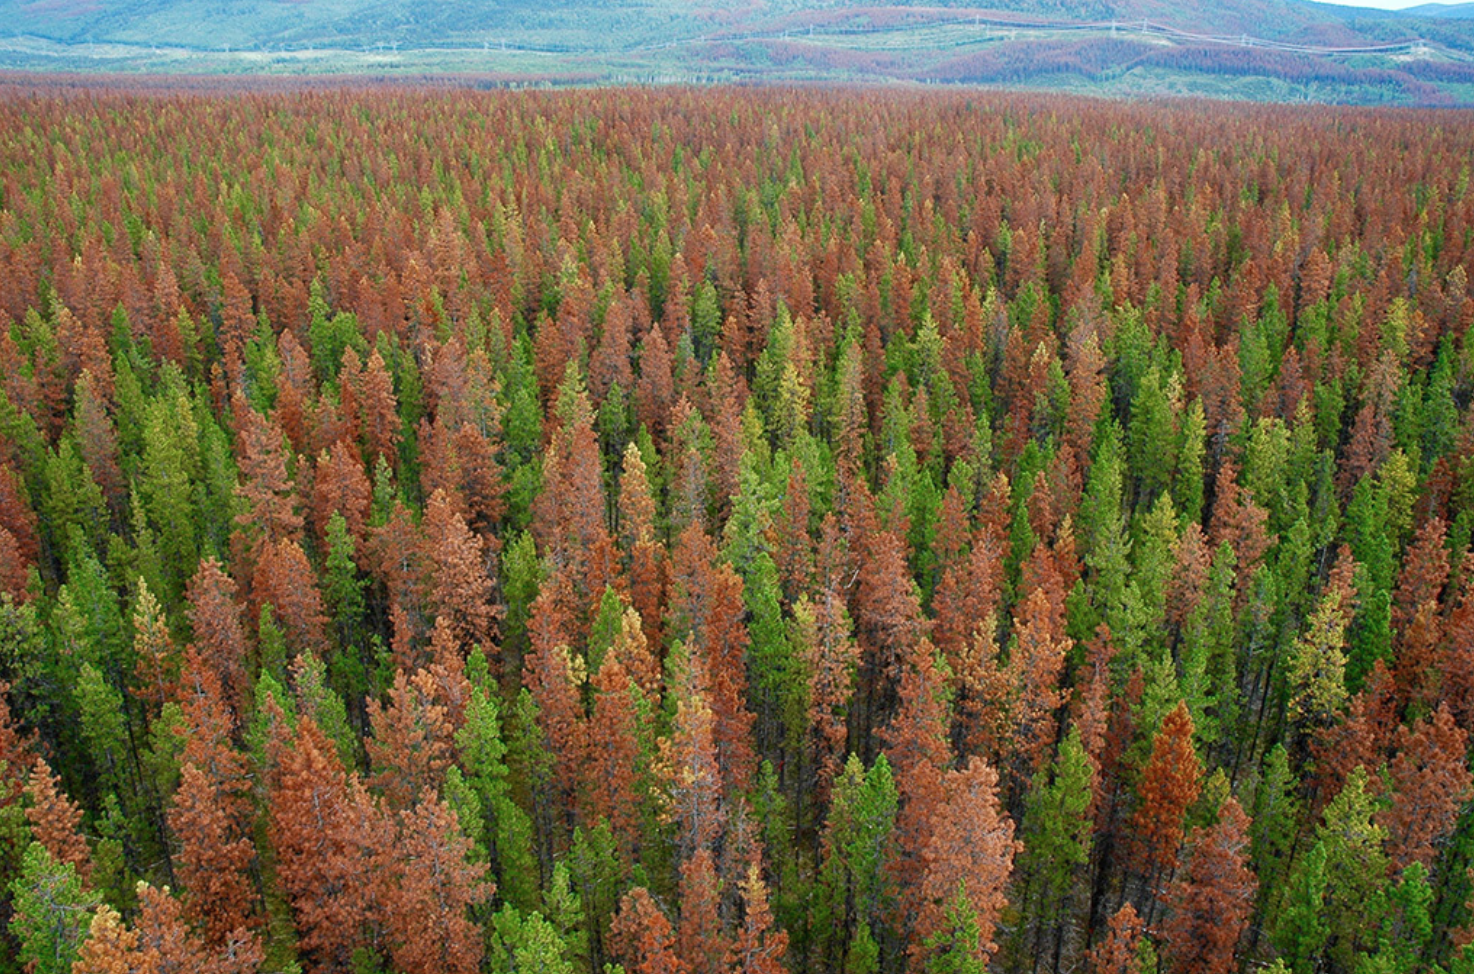 Image Credit: American Forests